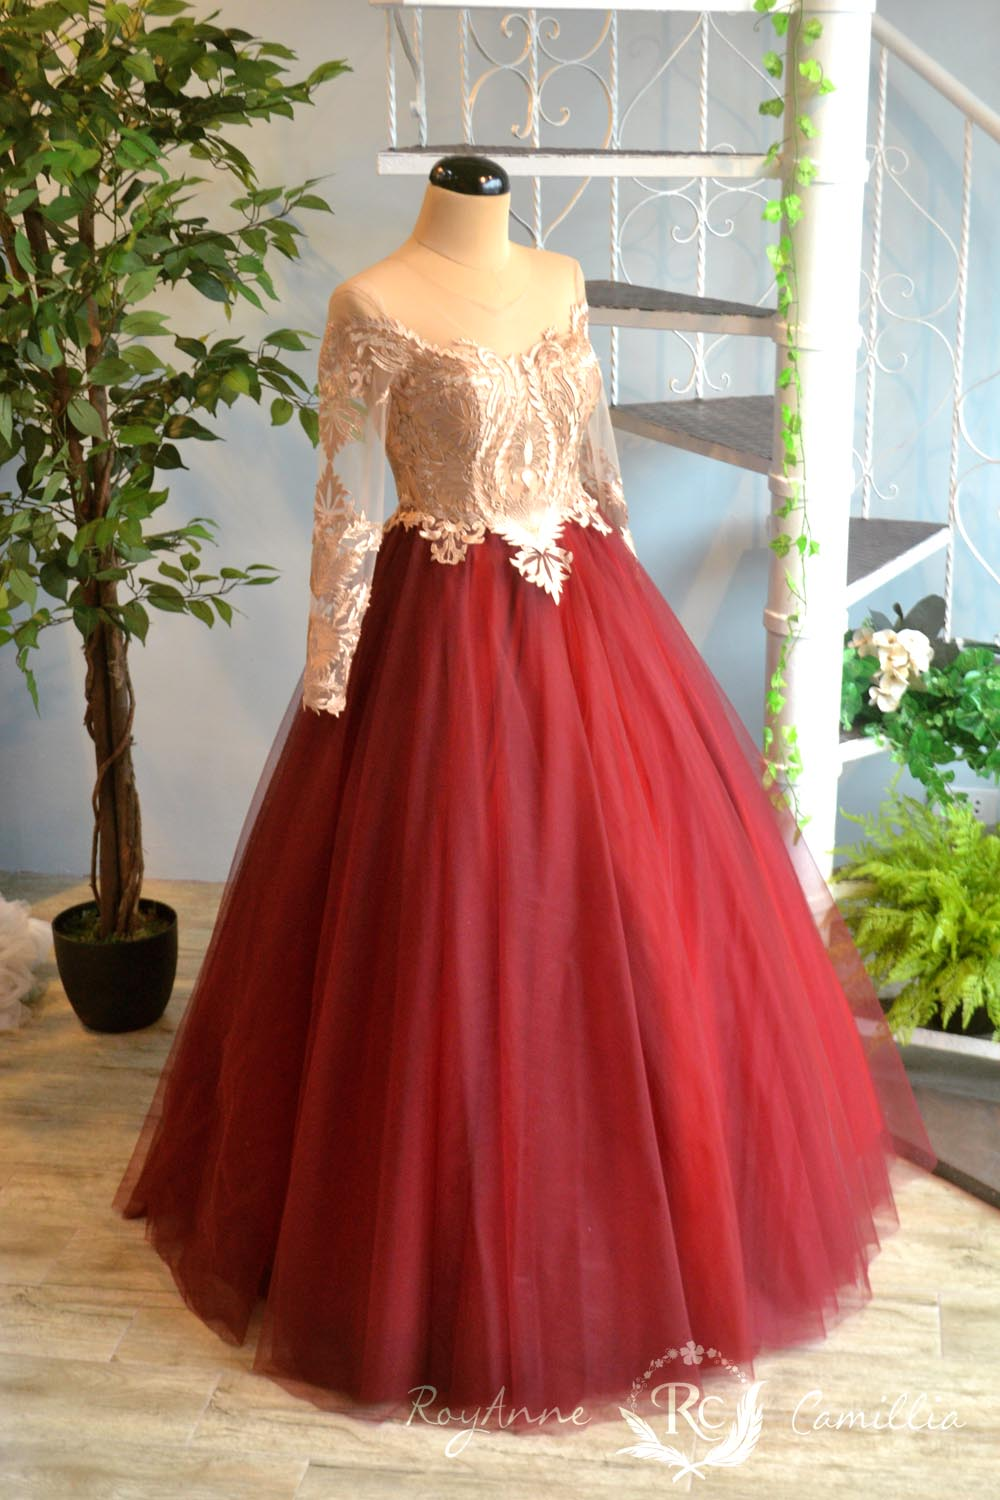 Ashley royanne camillia couture bridal gowns and gown for Rent for wedding dress